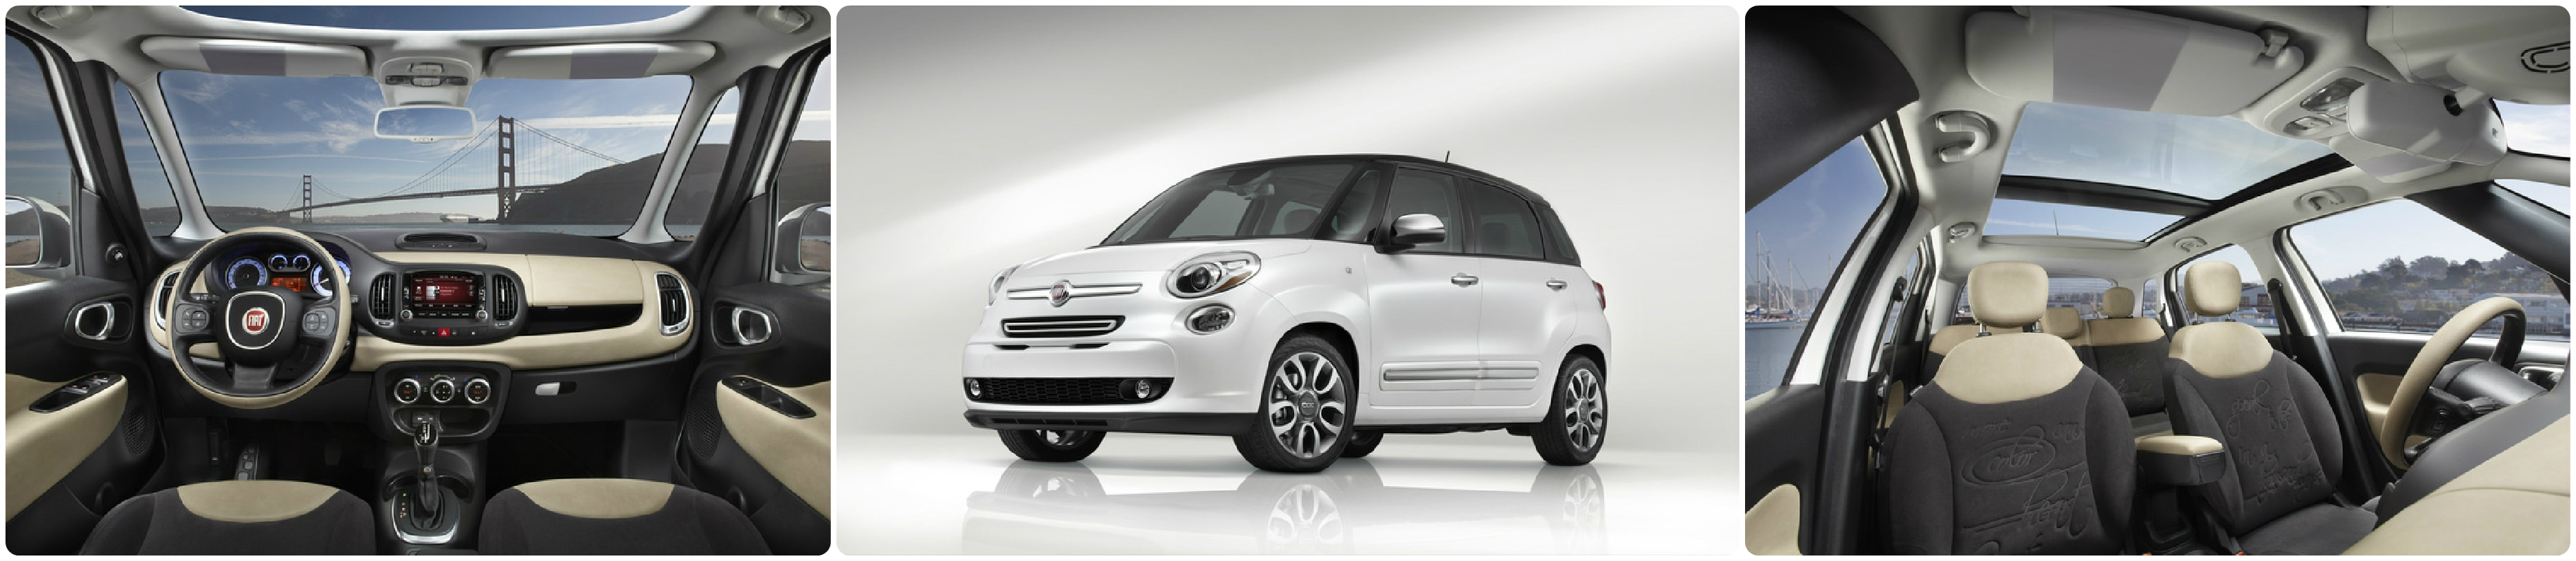 FIAT 500L Lounge interior and exterior